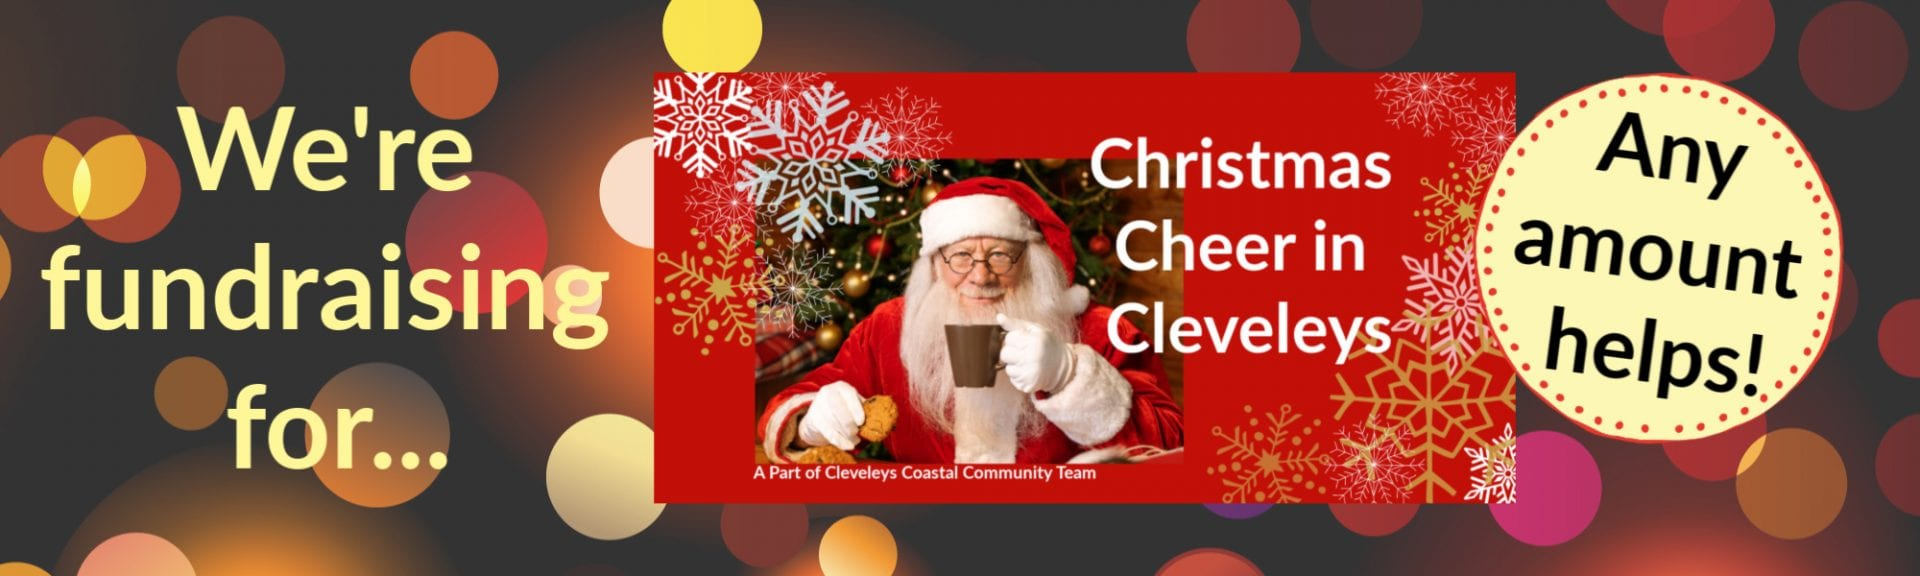 Fundraising for Christmas Cheer in Cleveleys